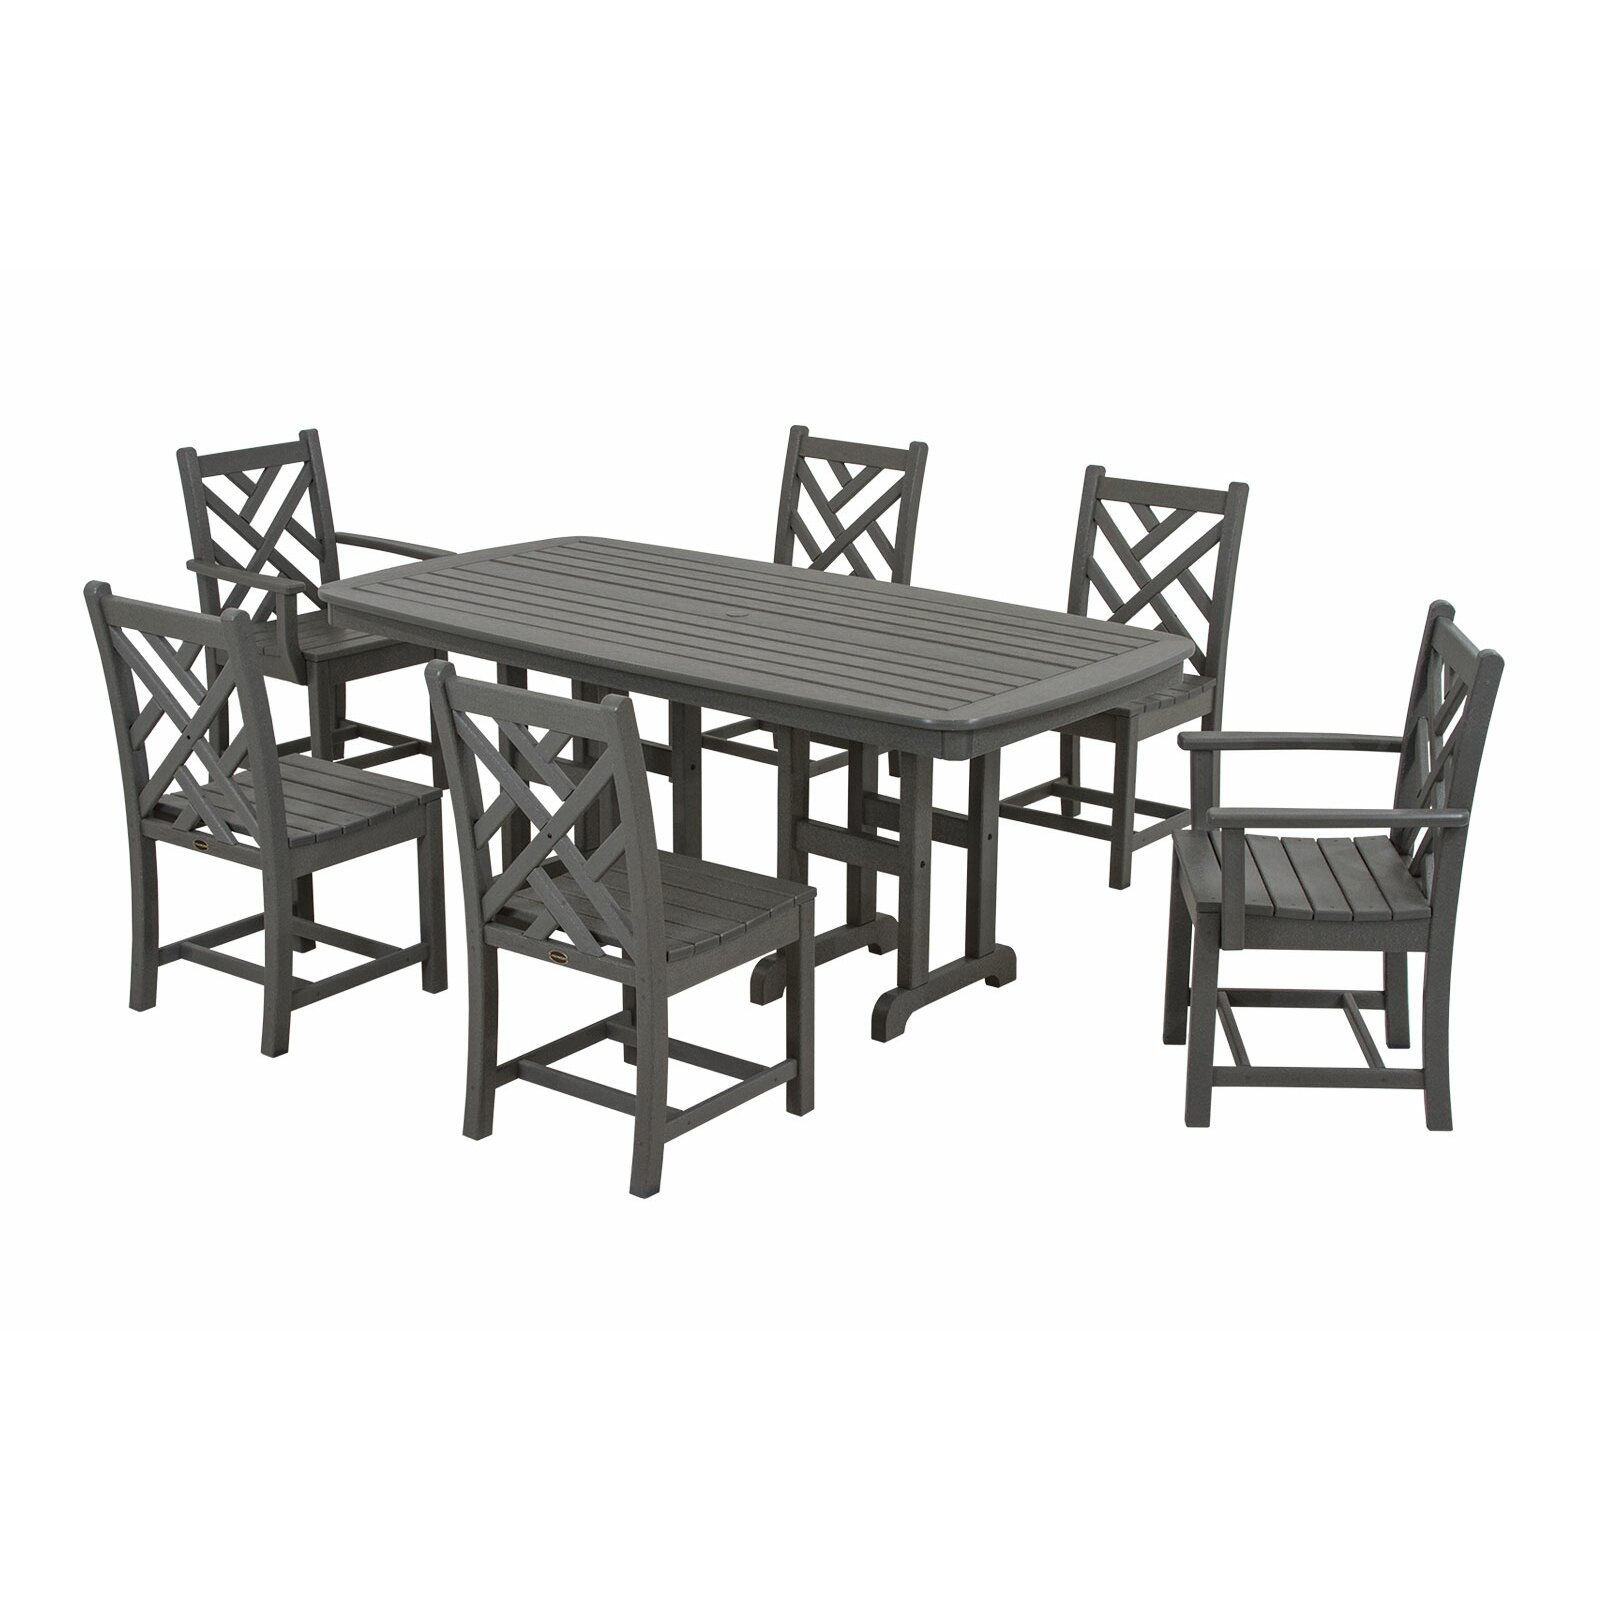 Very Impressive portraiture of POLYWOOD® Chippendale 7 Piece Dining Set & Reviews Wayfair with #423F3C color and 1600x1600 pixels